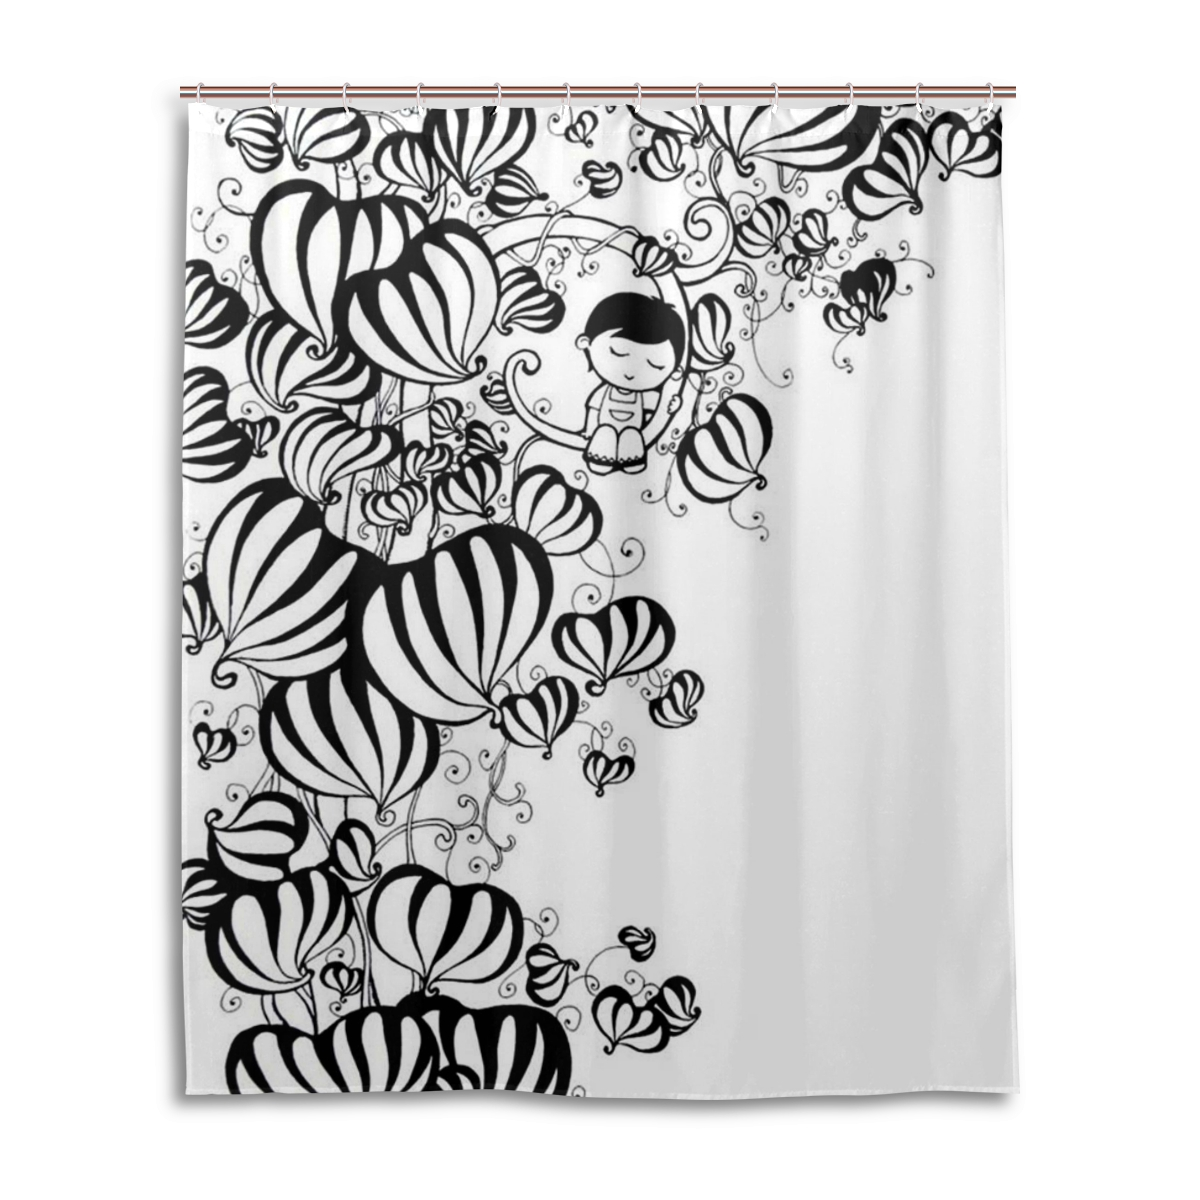 diy 60x72 inch 152x182cm stall shower curtain with plastic hooks